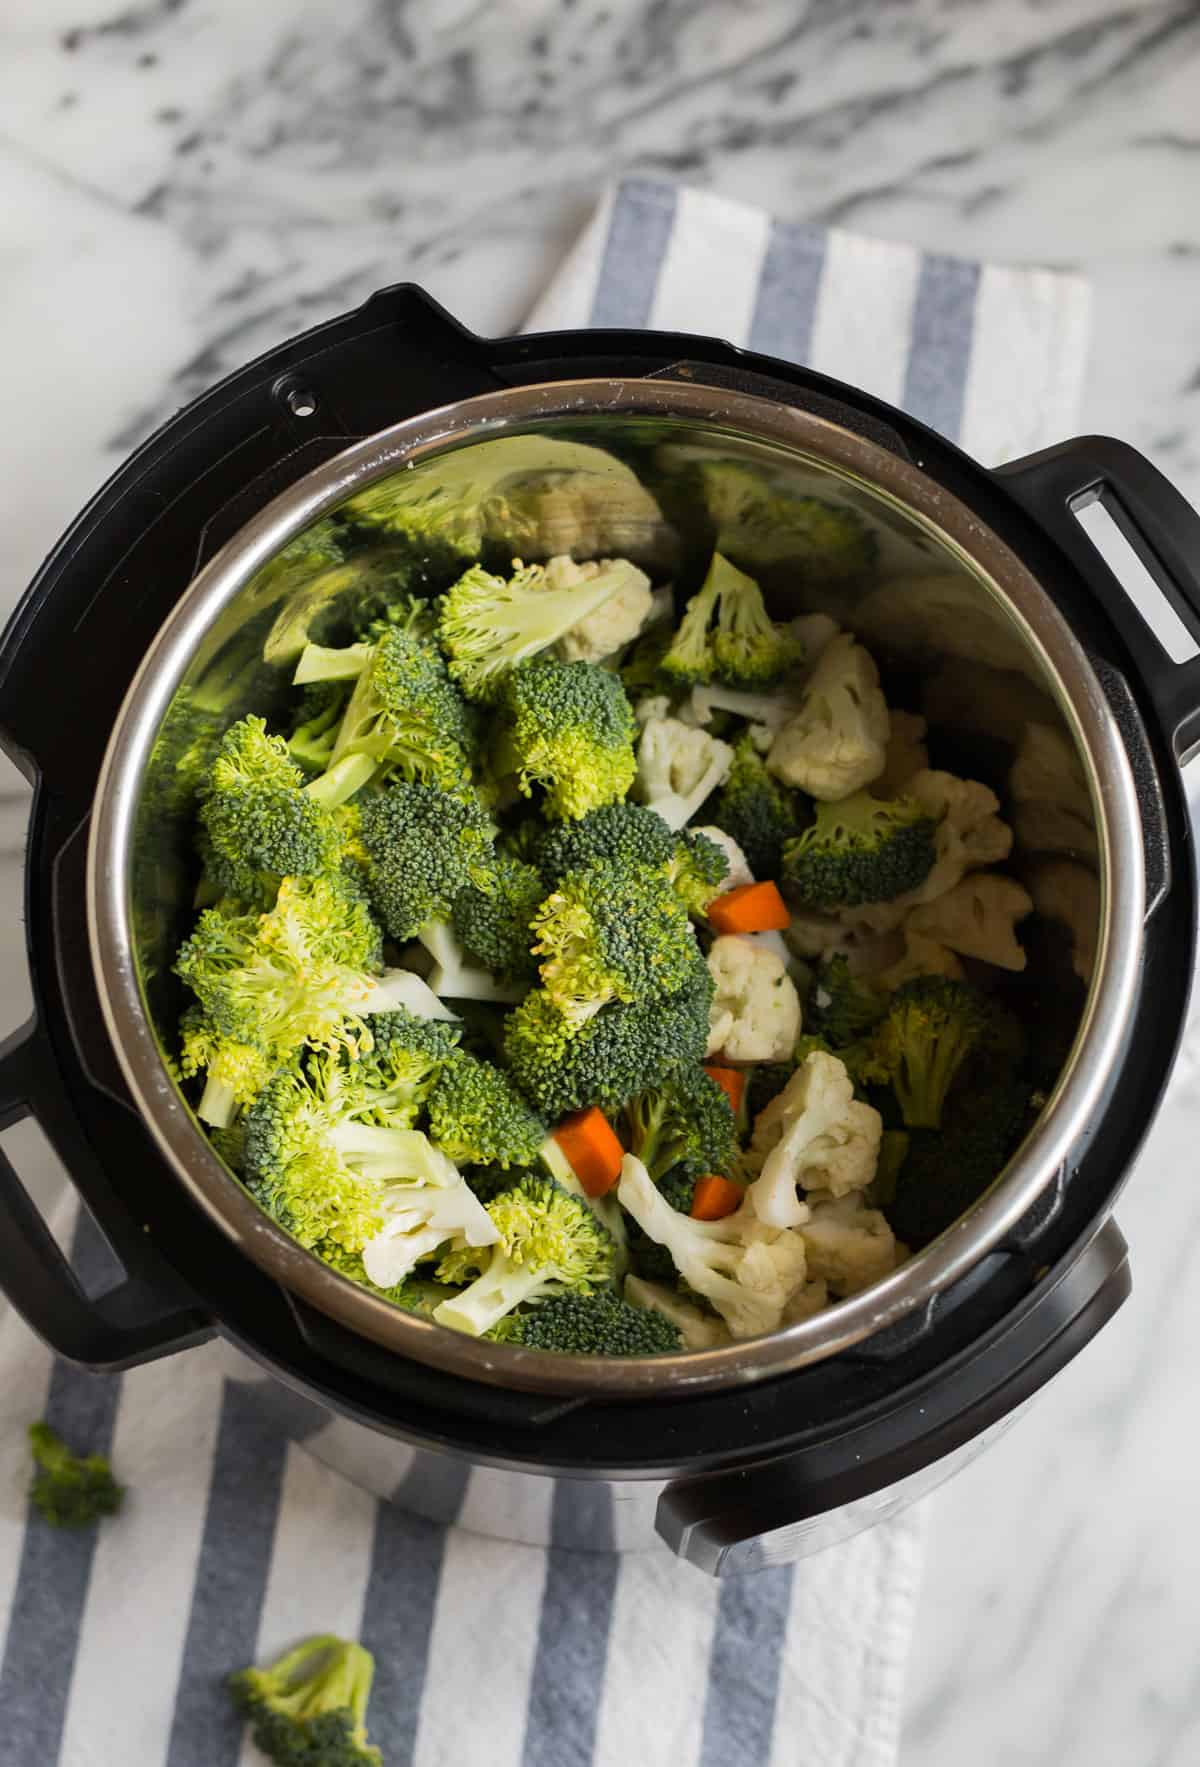 Vegetables in a pressure cooker